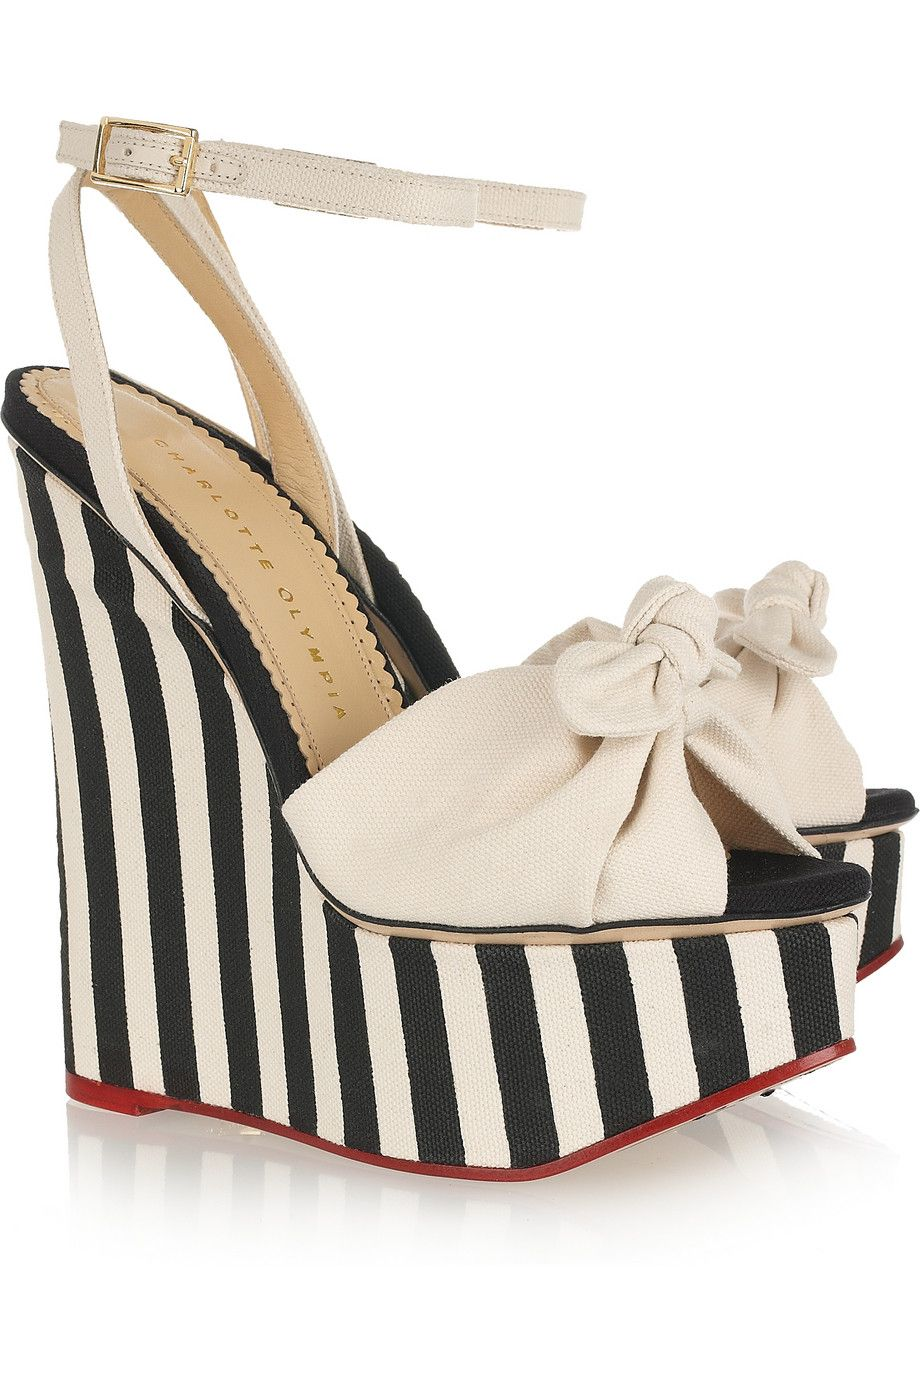 Charlotte Olympia Bow Platform Wedges nicekicks sale online low price fee shipping cheap online visa payment cheap online buy cheap low cost aMKqS0